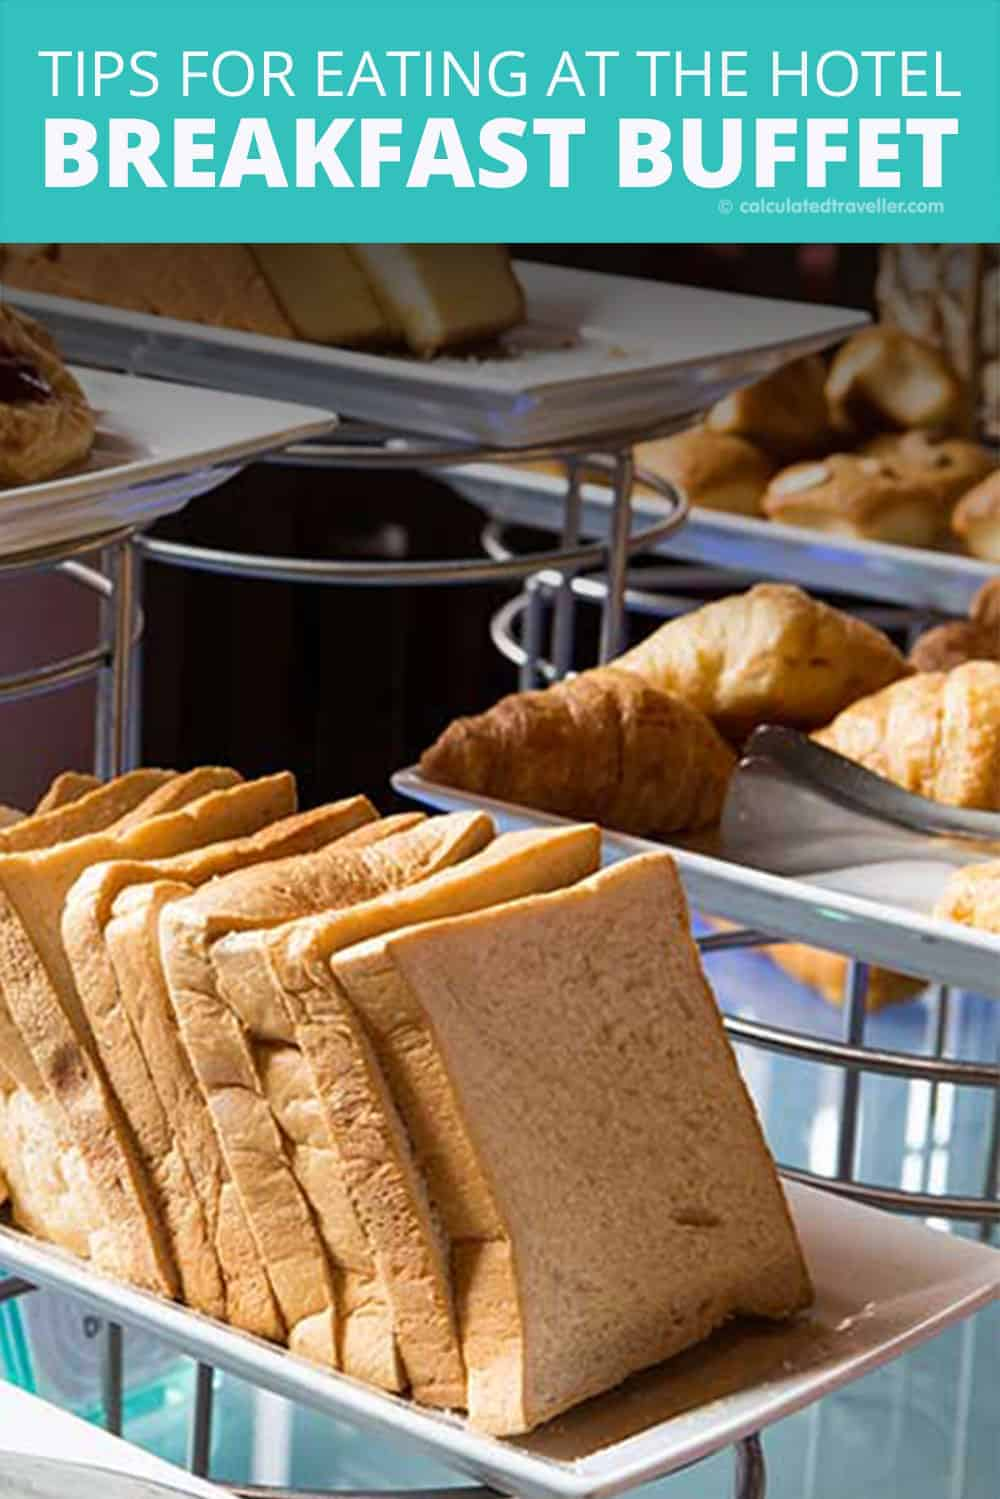 Five Tips for Eating at the Hotel Breakfast Buffet. Advice from Calculated Traveller. #travel #hotel #accommodation #breakfast #buffet #healthy #tip #advice